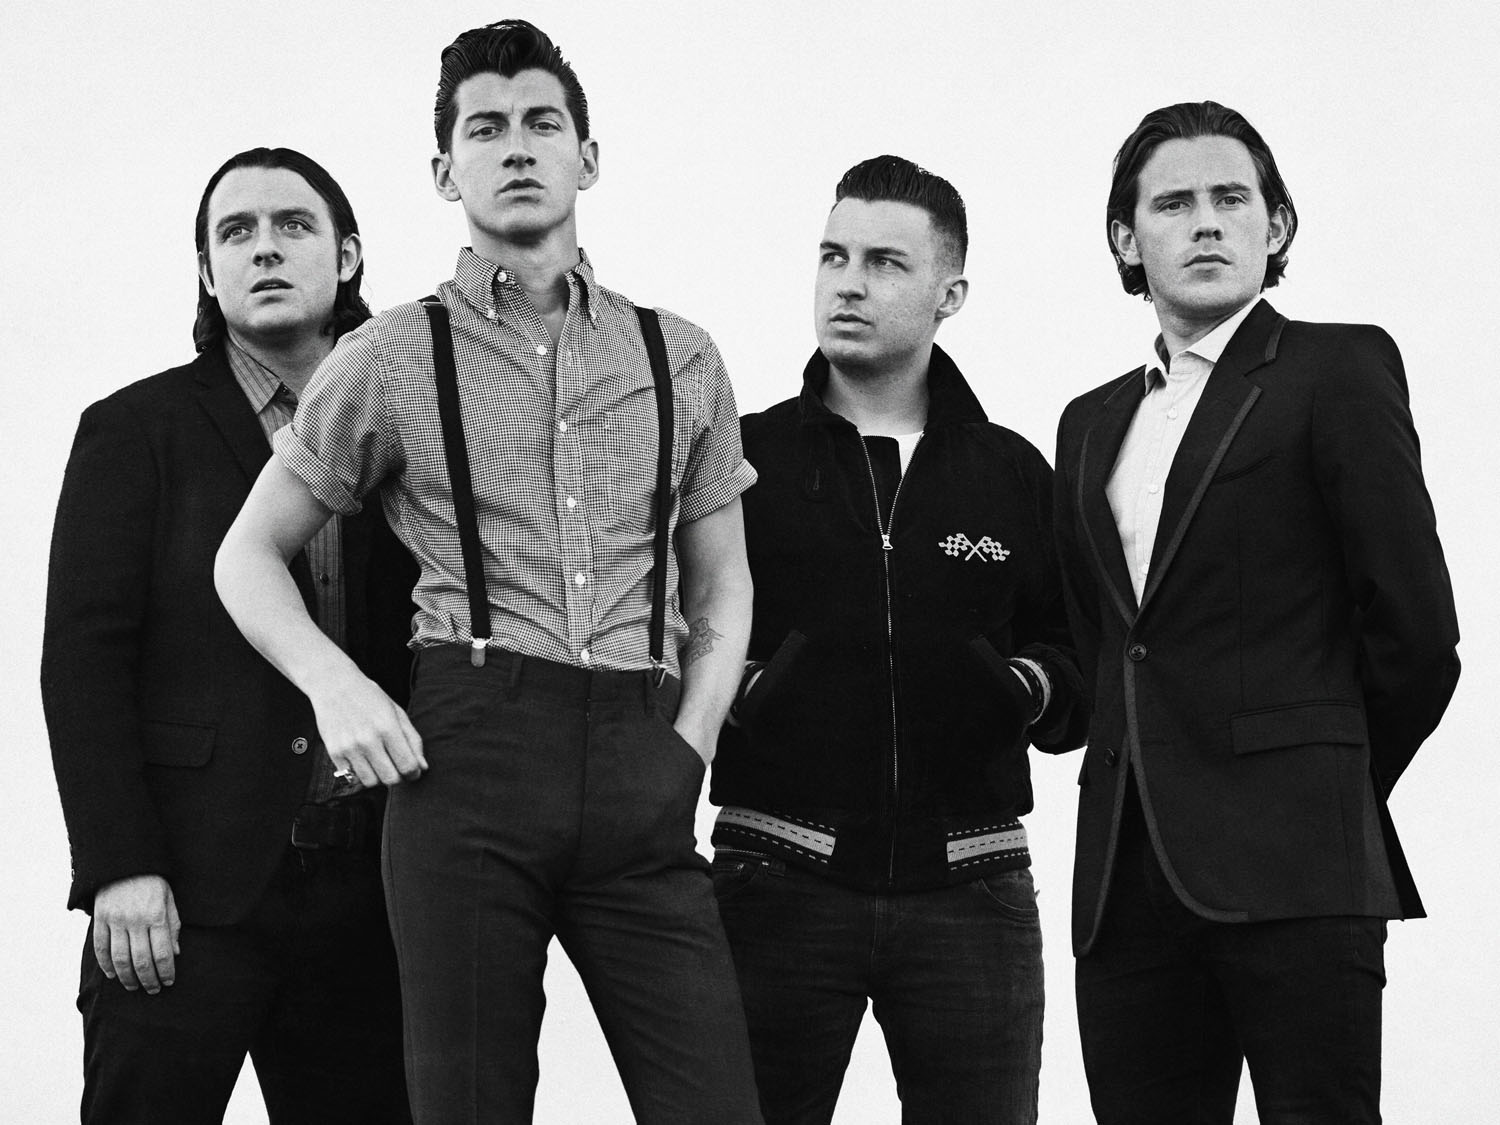 NME Awards 2014: Who will probably win out of Arctic Monkey's, Jake Bugg, Arcade Fire and co versus who should win